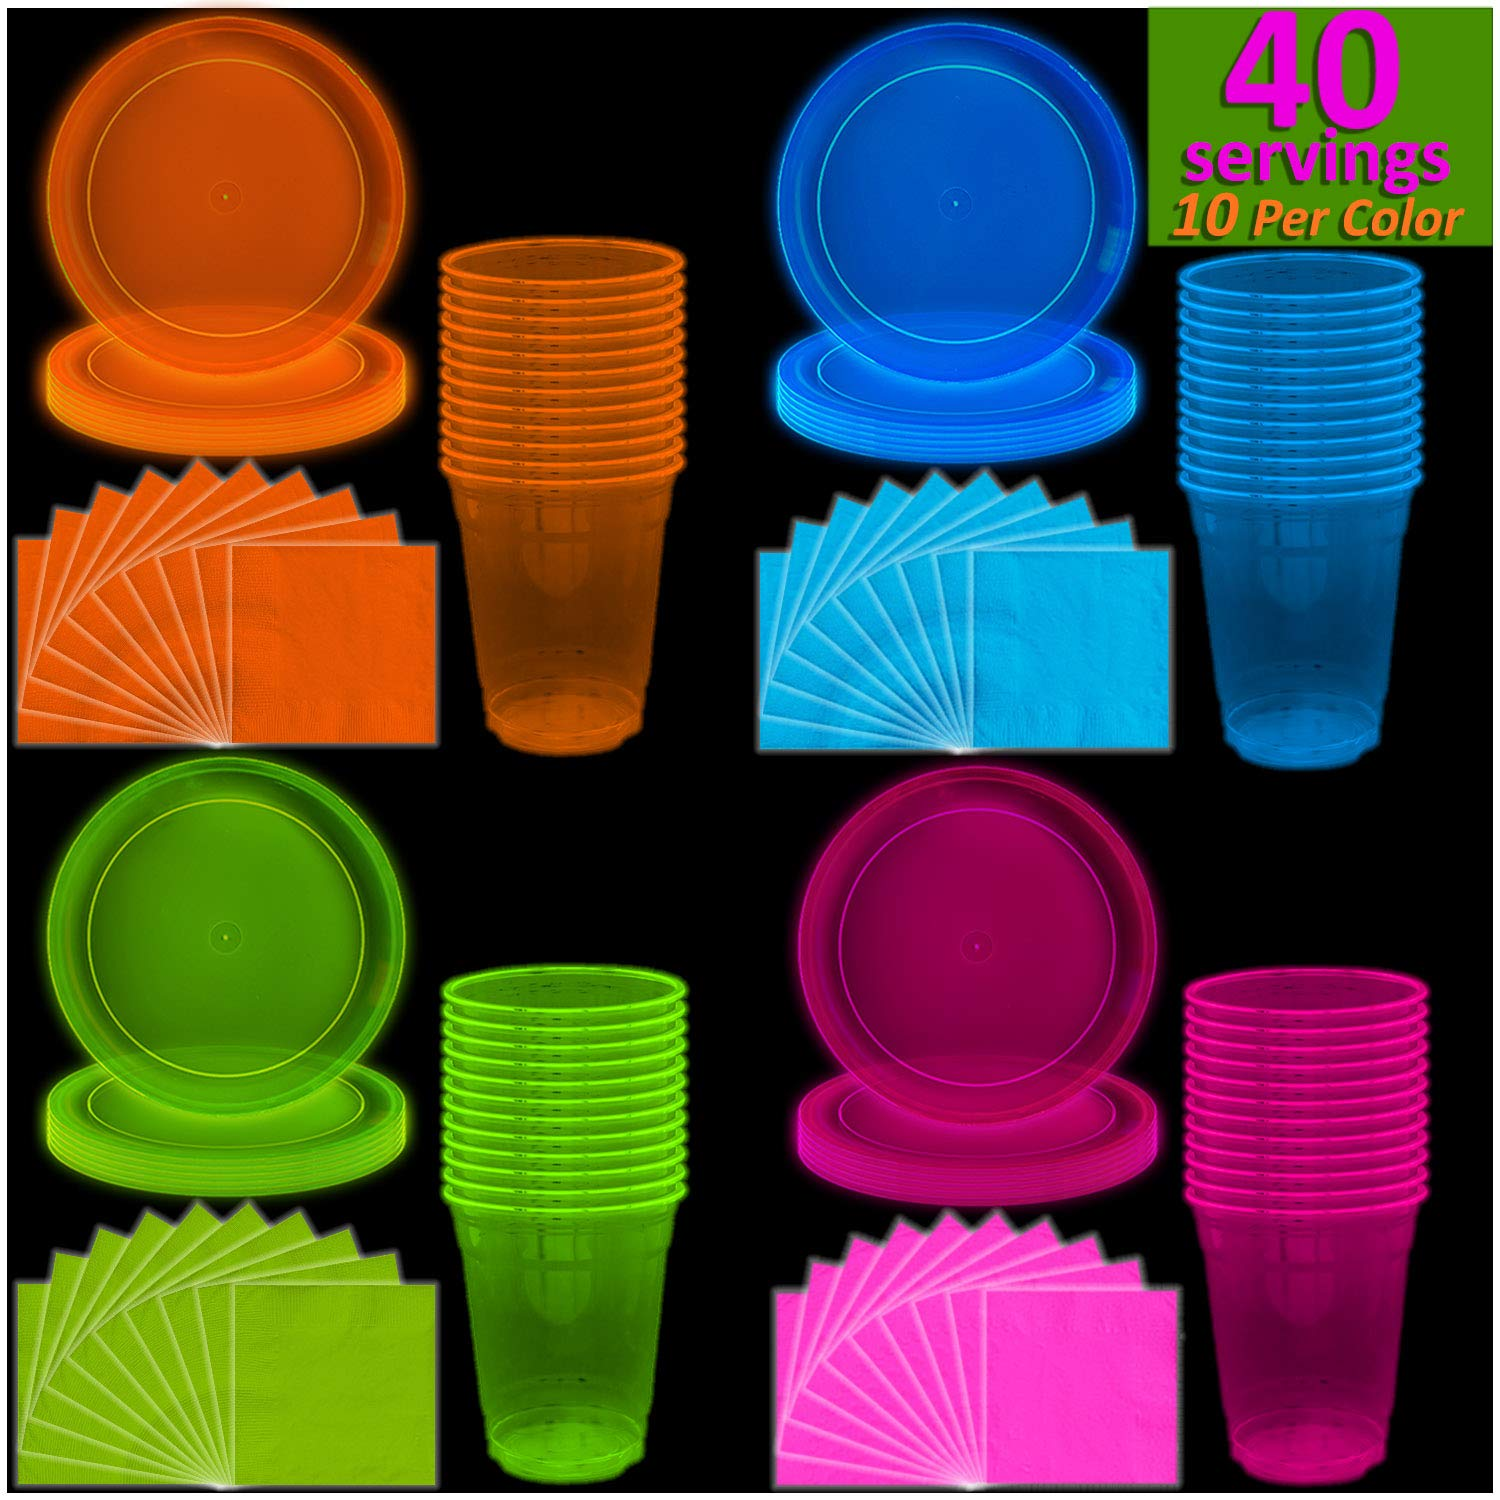 Neon Plates (9''), Cups (12 oz) & Napkins - 40 Servings, 4 colors - Black Light Party Supplies, Glow-in-the-Dark with UV Light - for Birthdays, 80s Theme, Fiesta, clubs